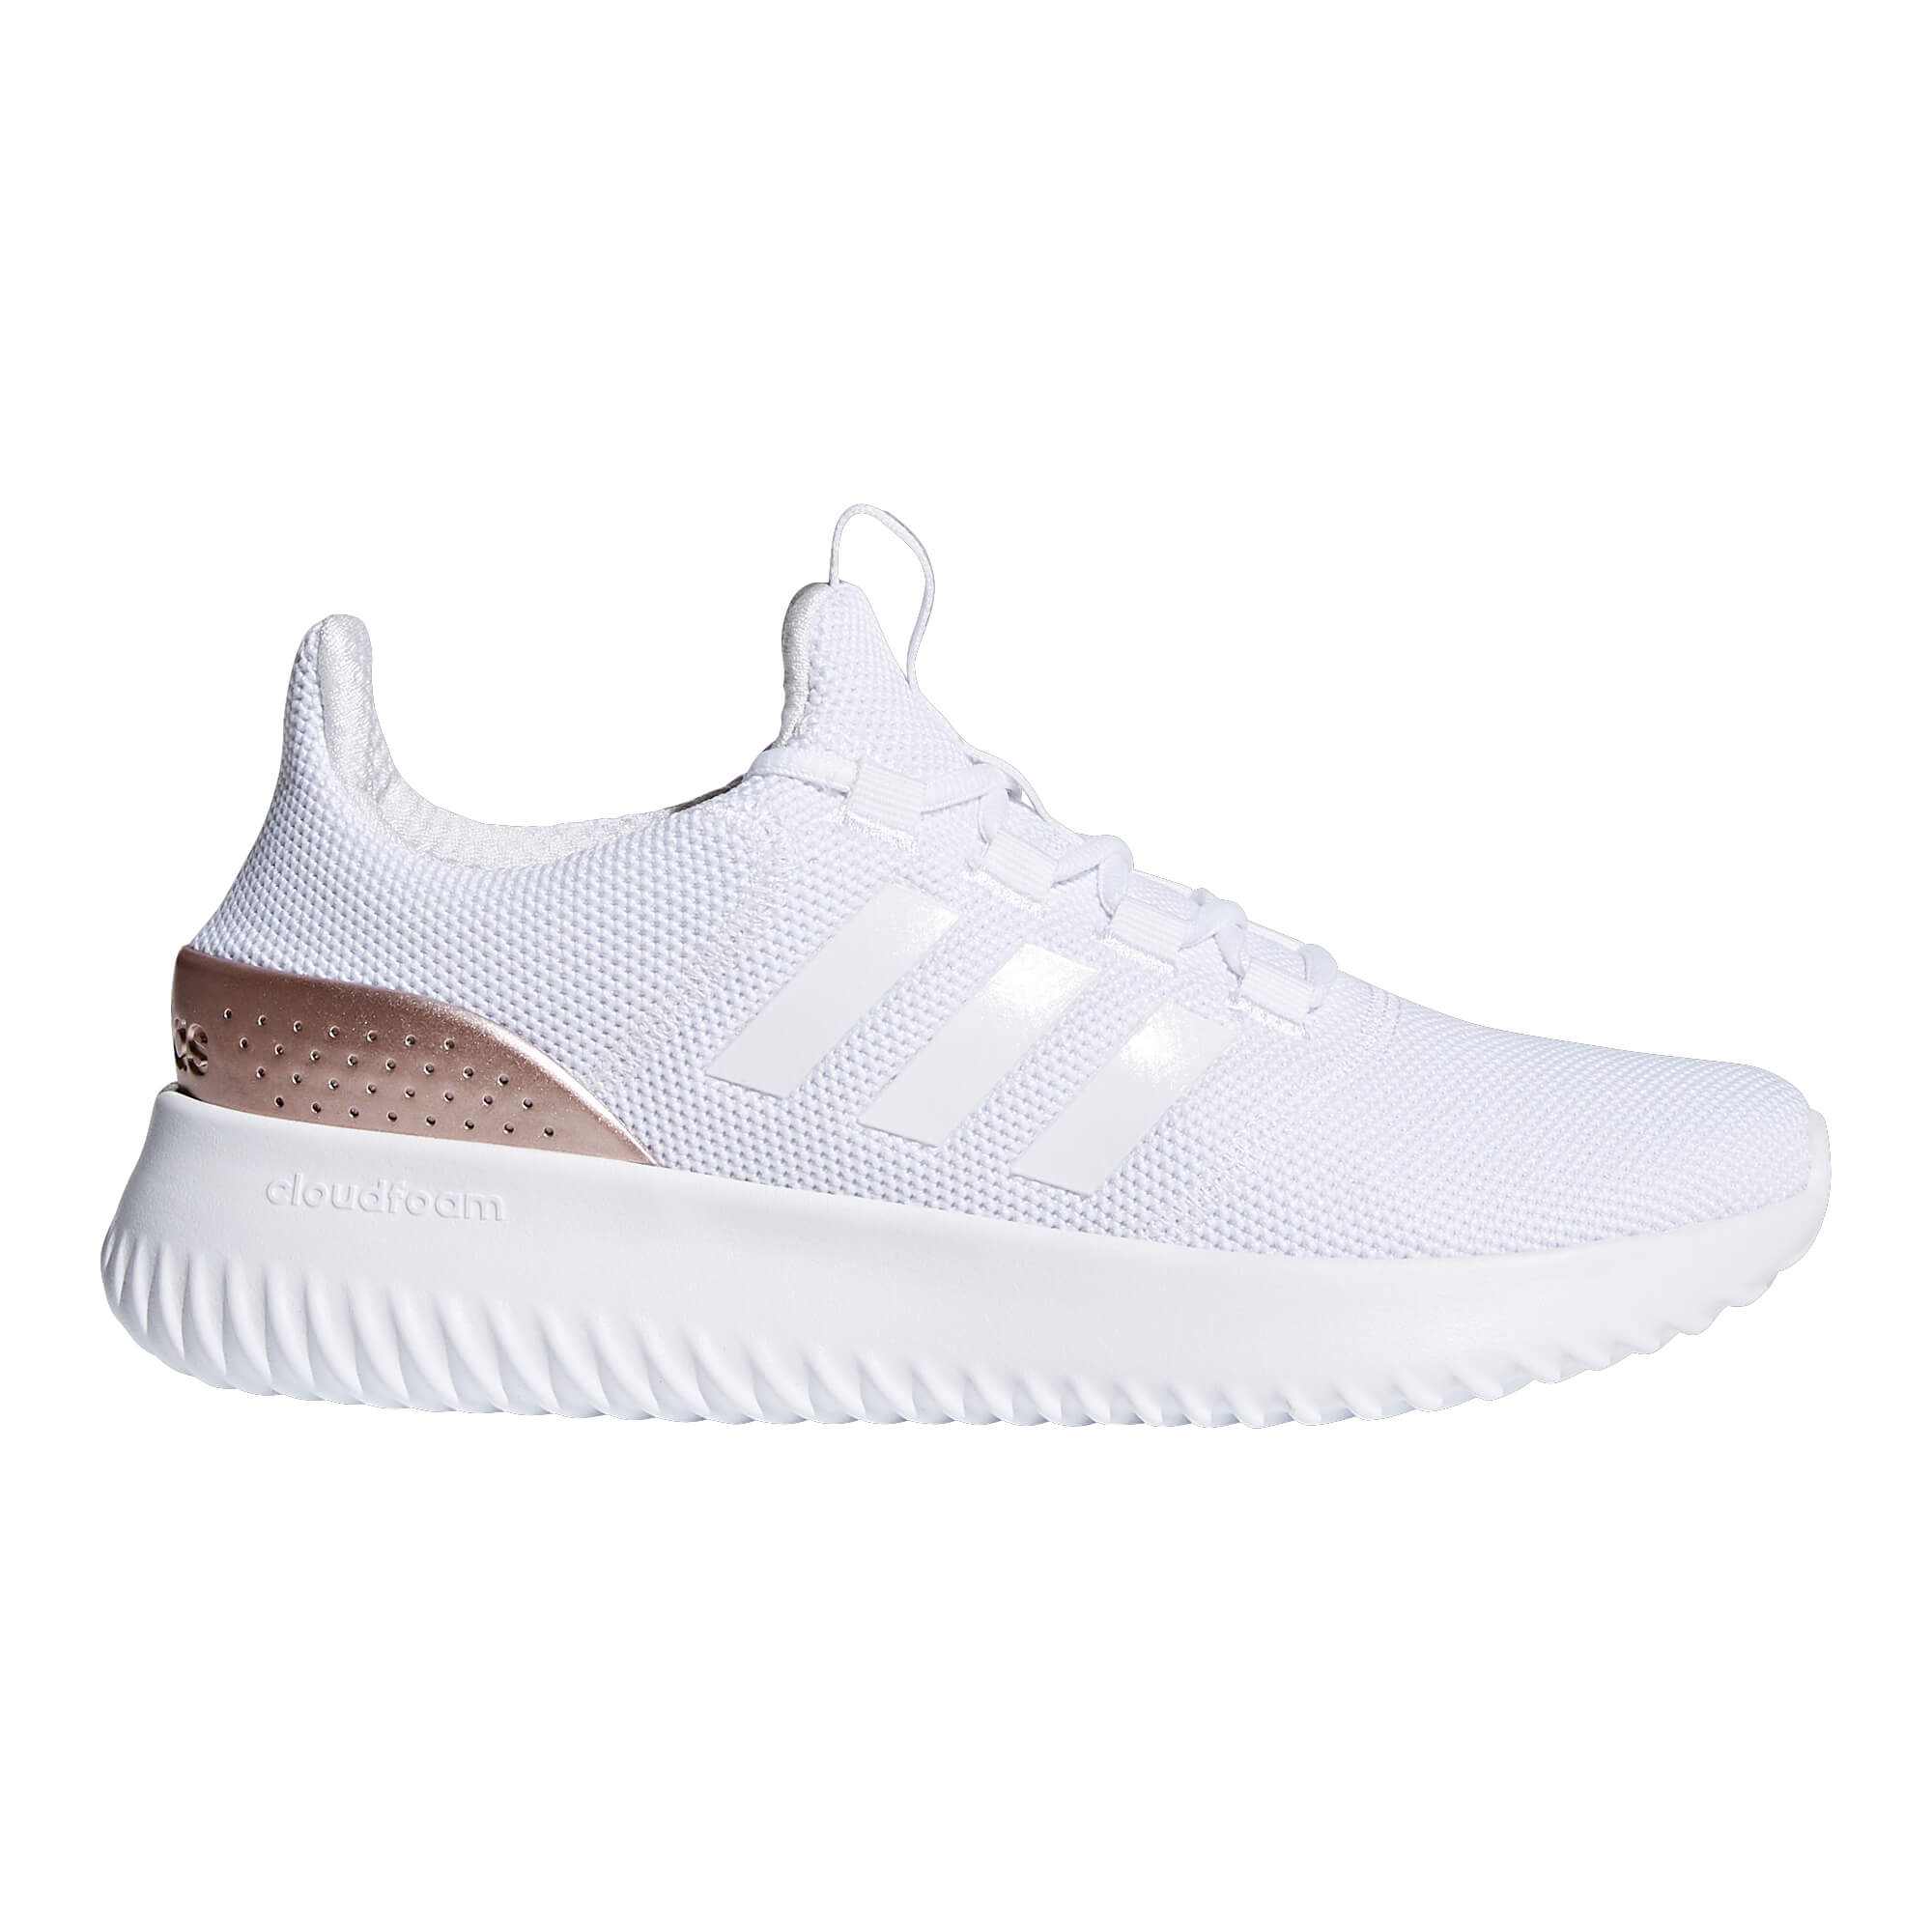 adidas Cloudfoam Ultimate, vel. 40 2/3